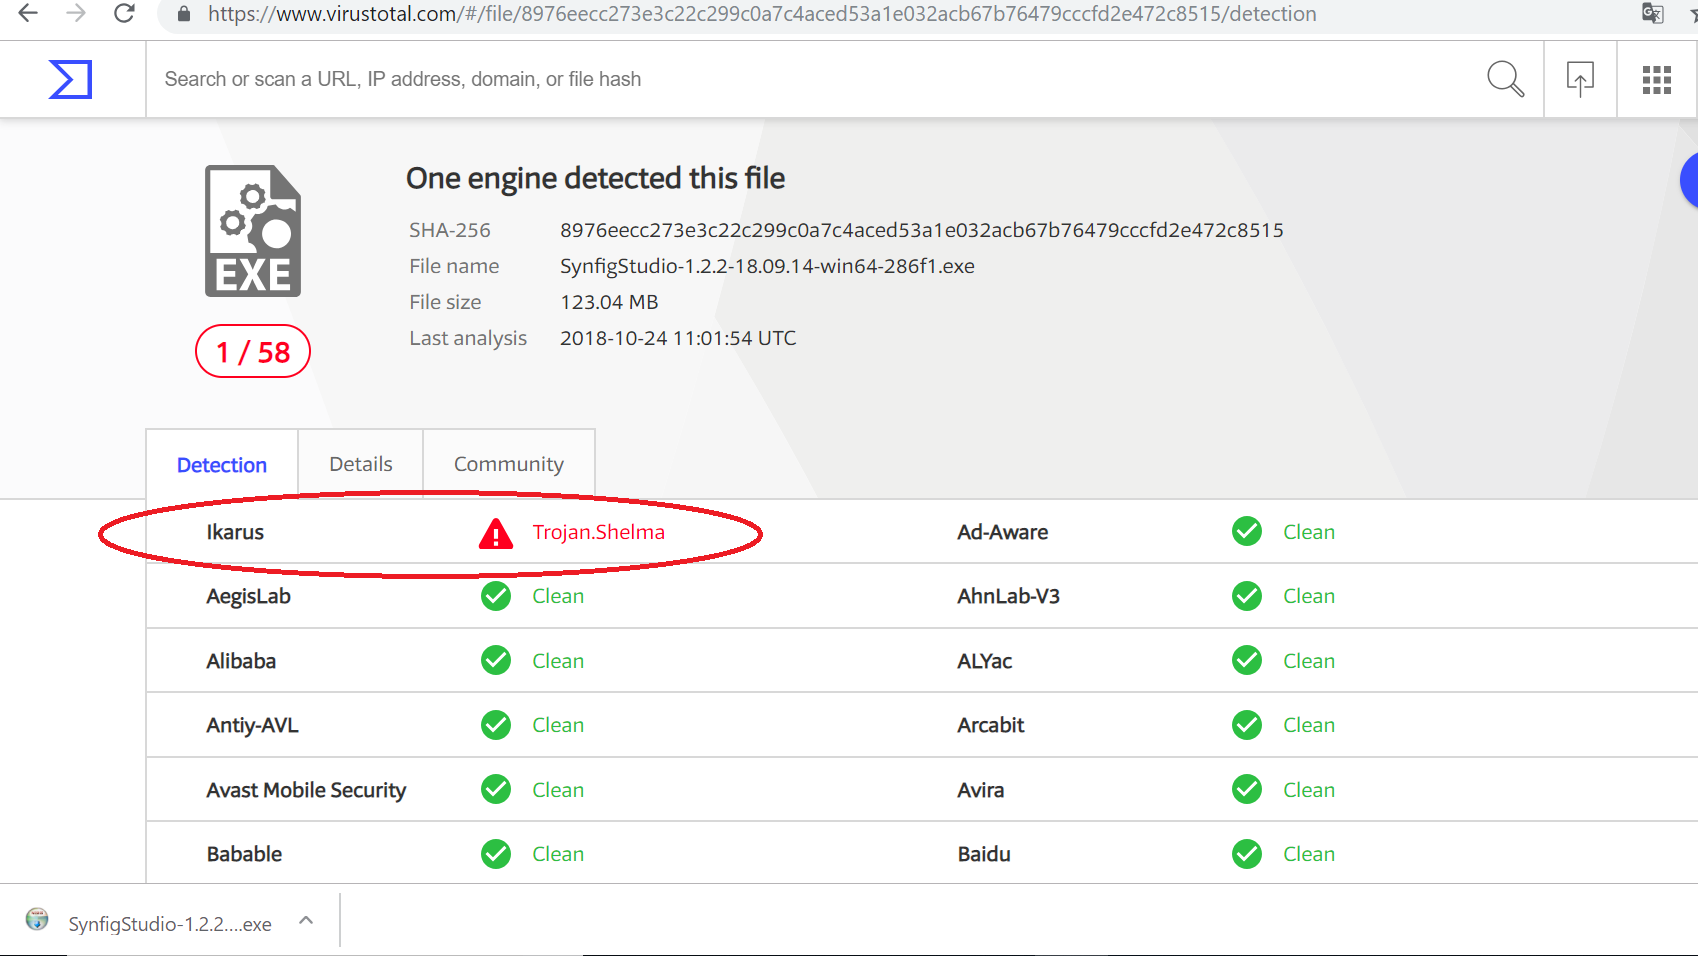 Synfig Studio installer reported as malicious file by